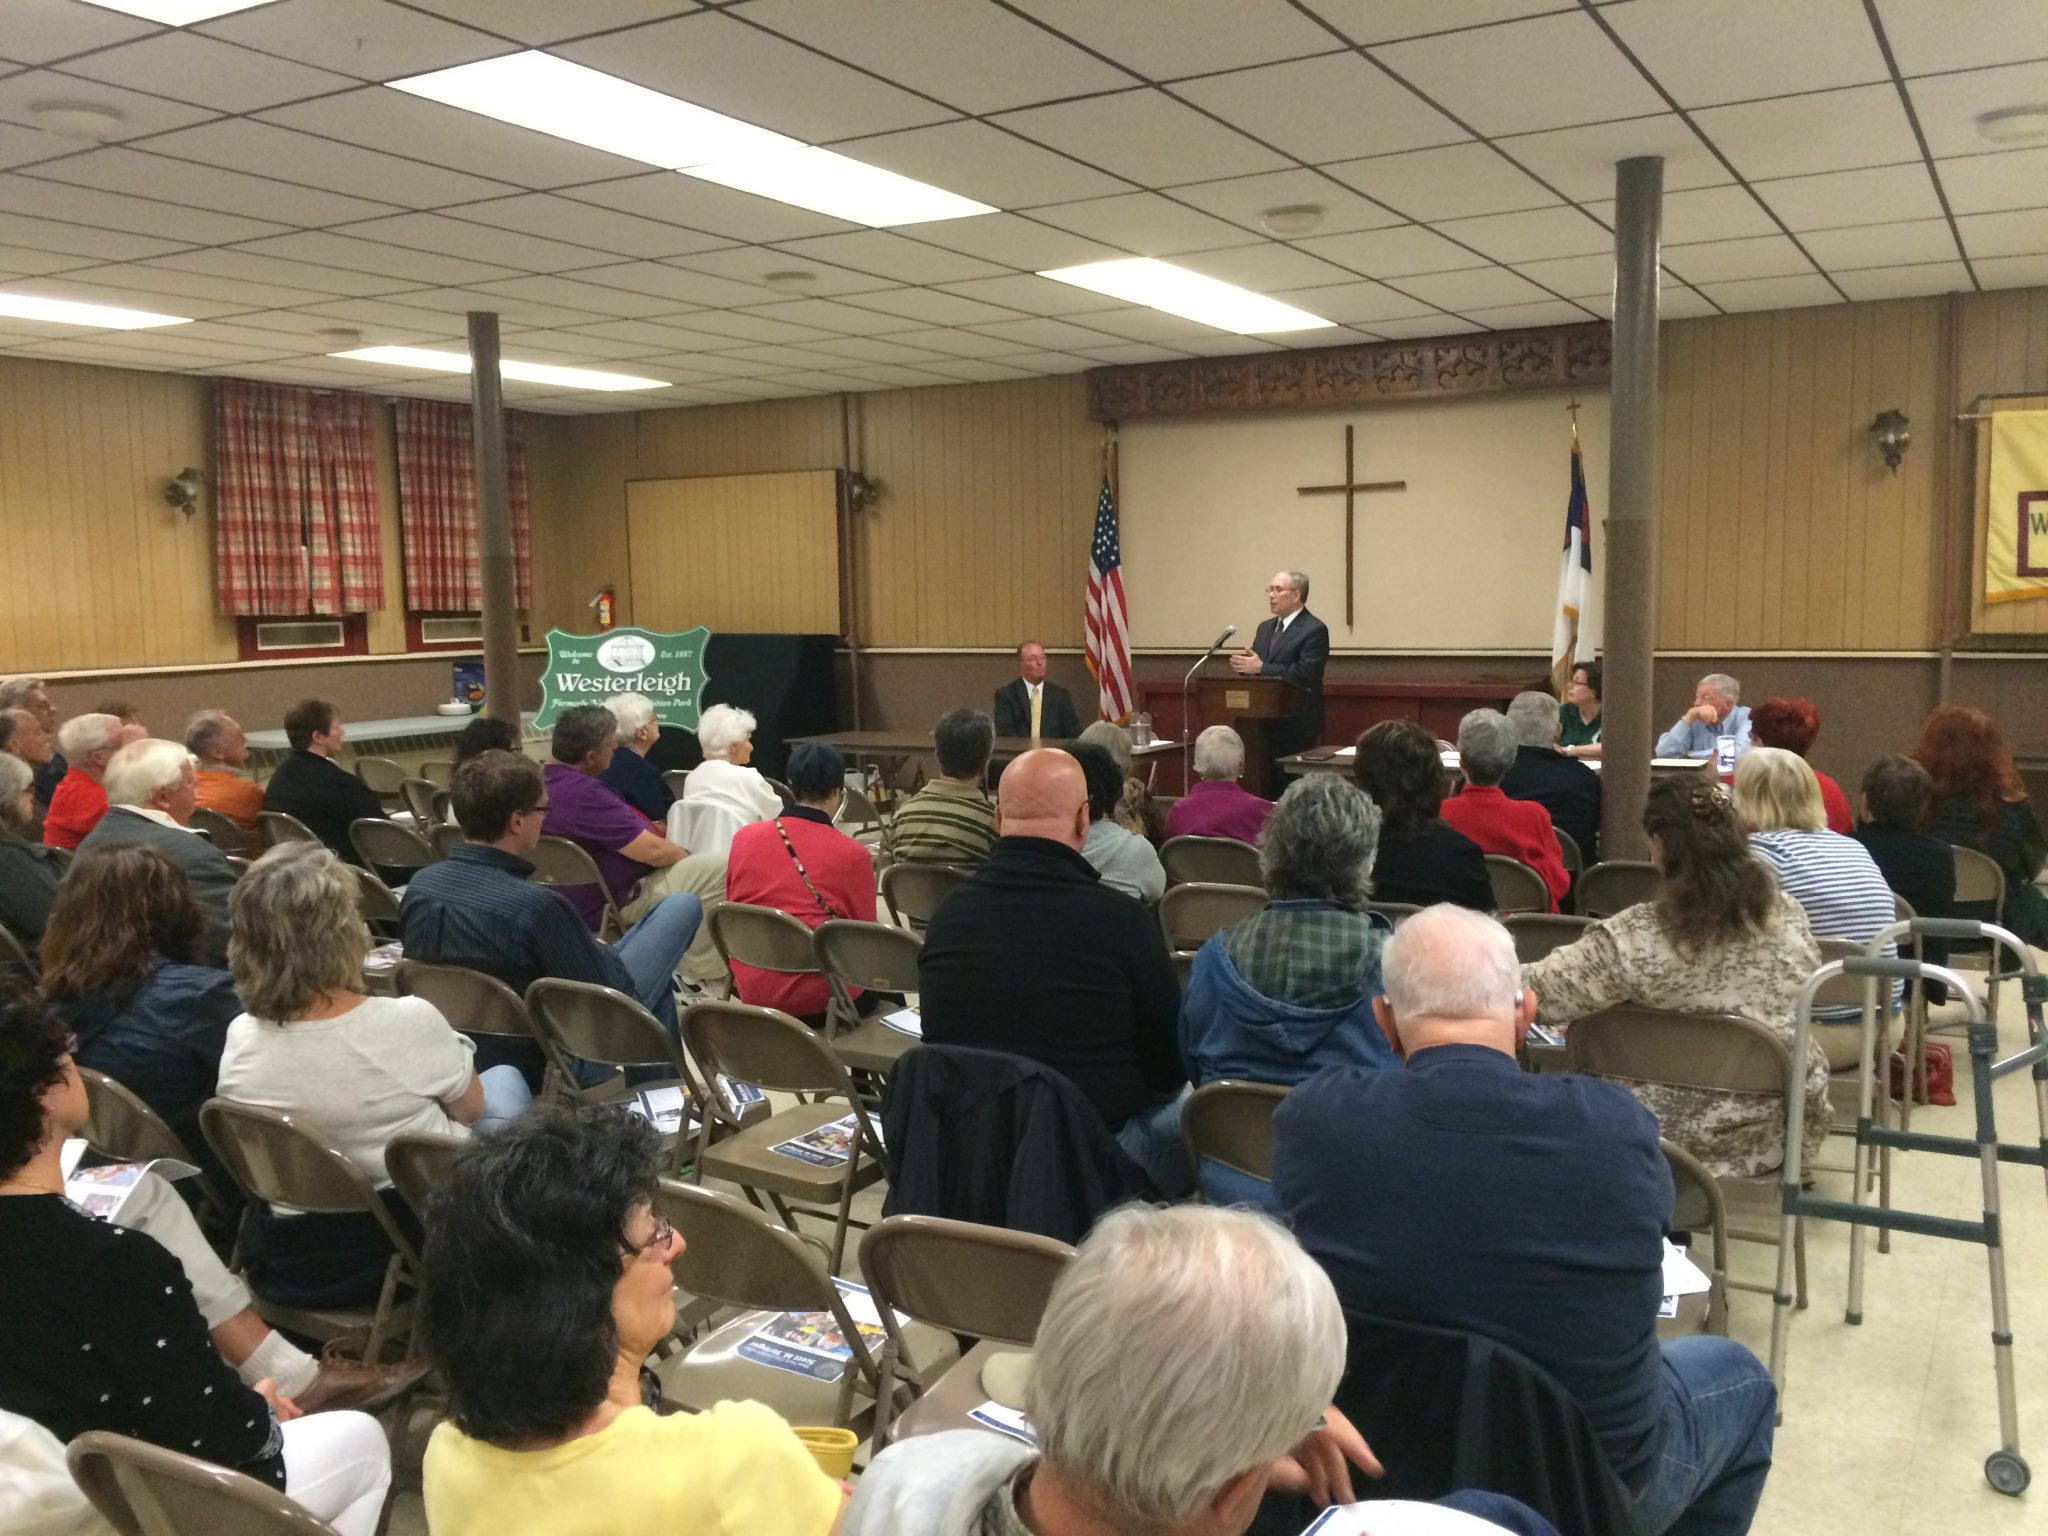 Westerleigh Improvement Society Annual Meeting May 13, 2015